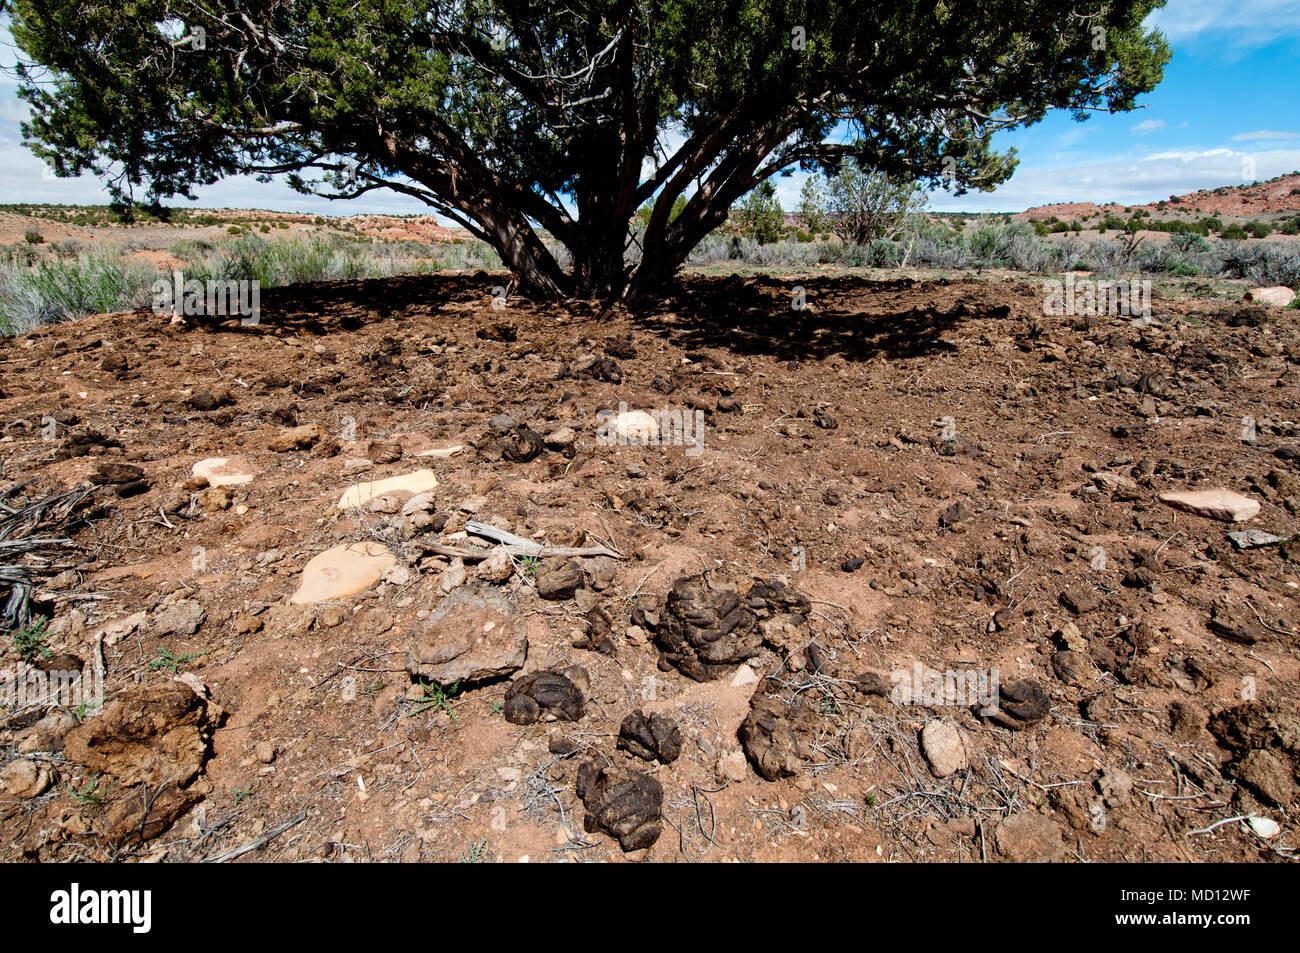 Livestock overuse and damage to rangeland on Bureau of Land Management Land in central Utah - Stock Image